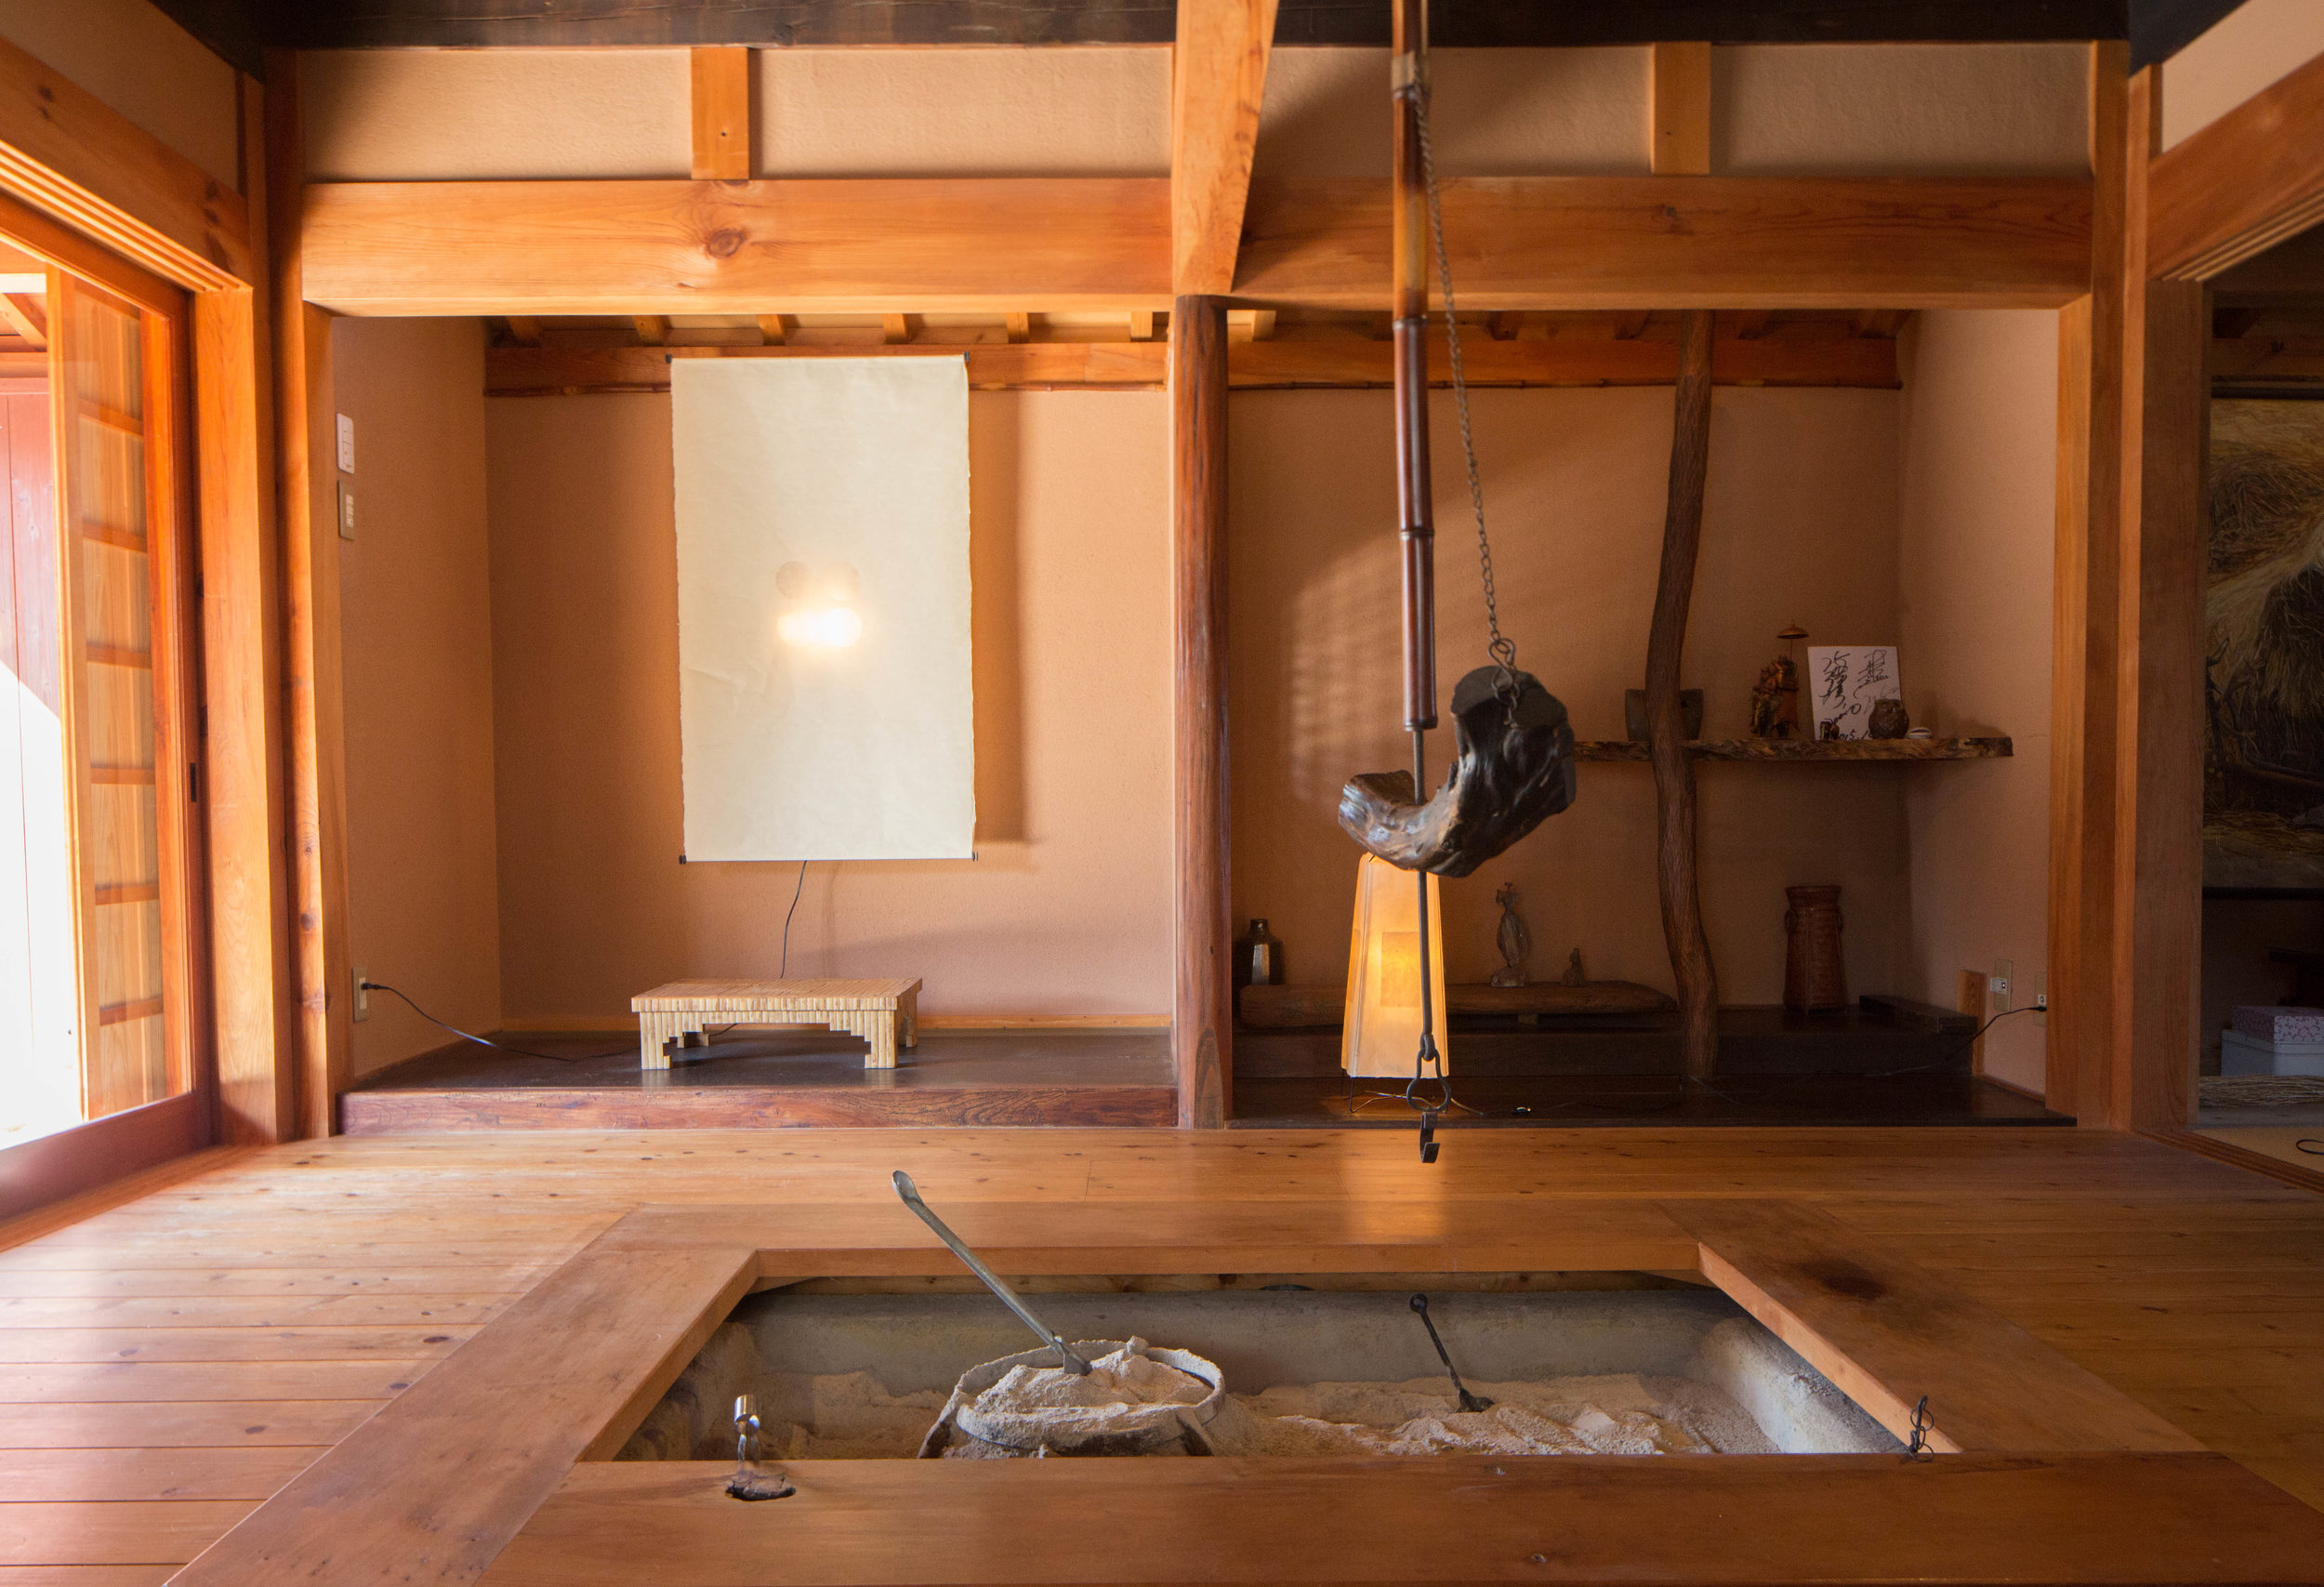 At the center of Saimoto's home lies an irori hearth. ©TOKI